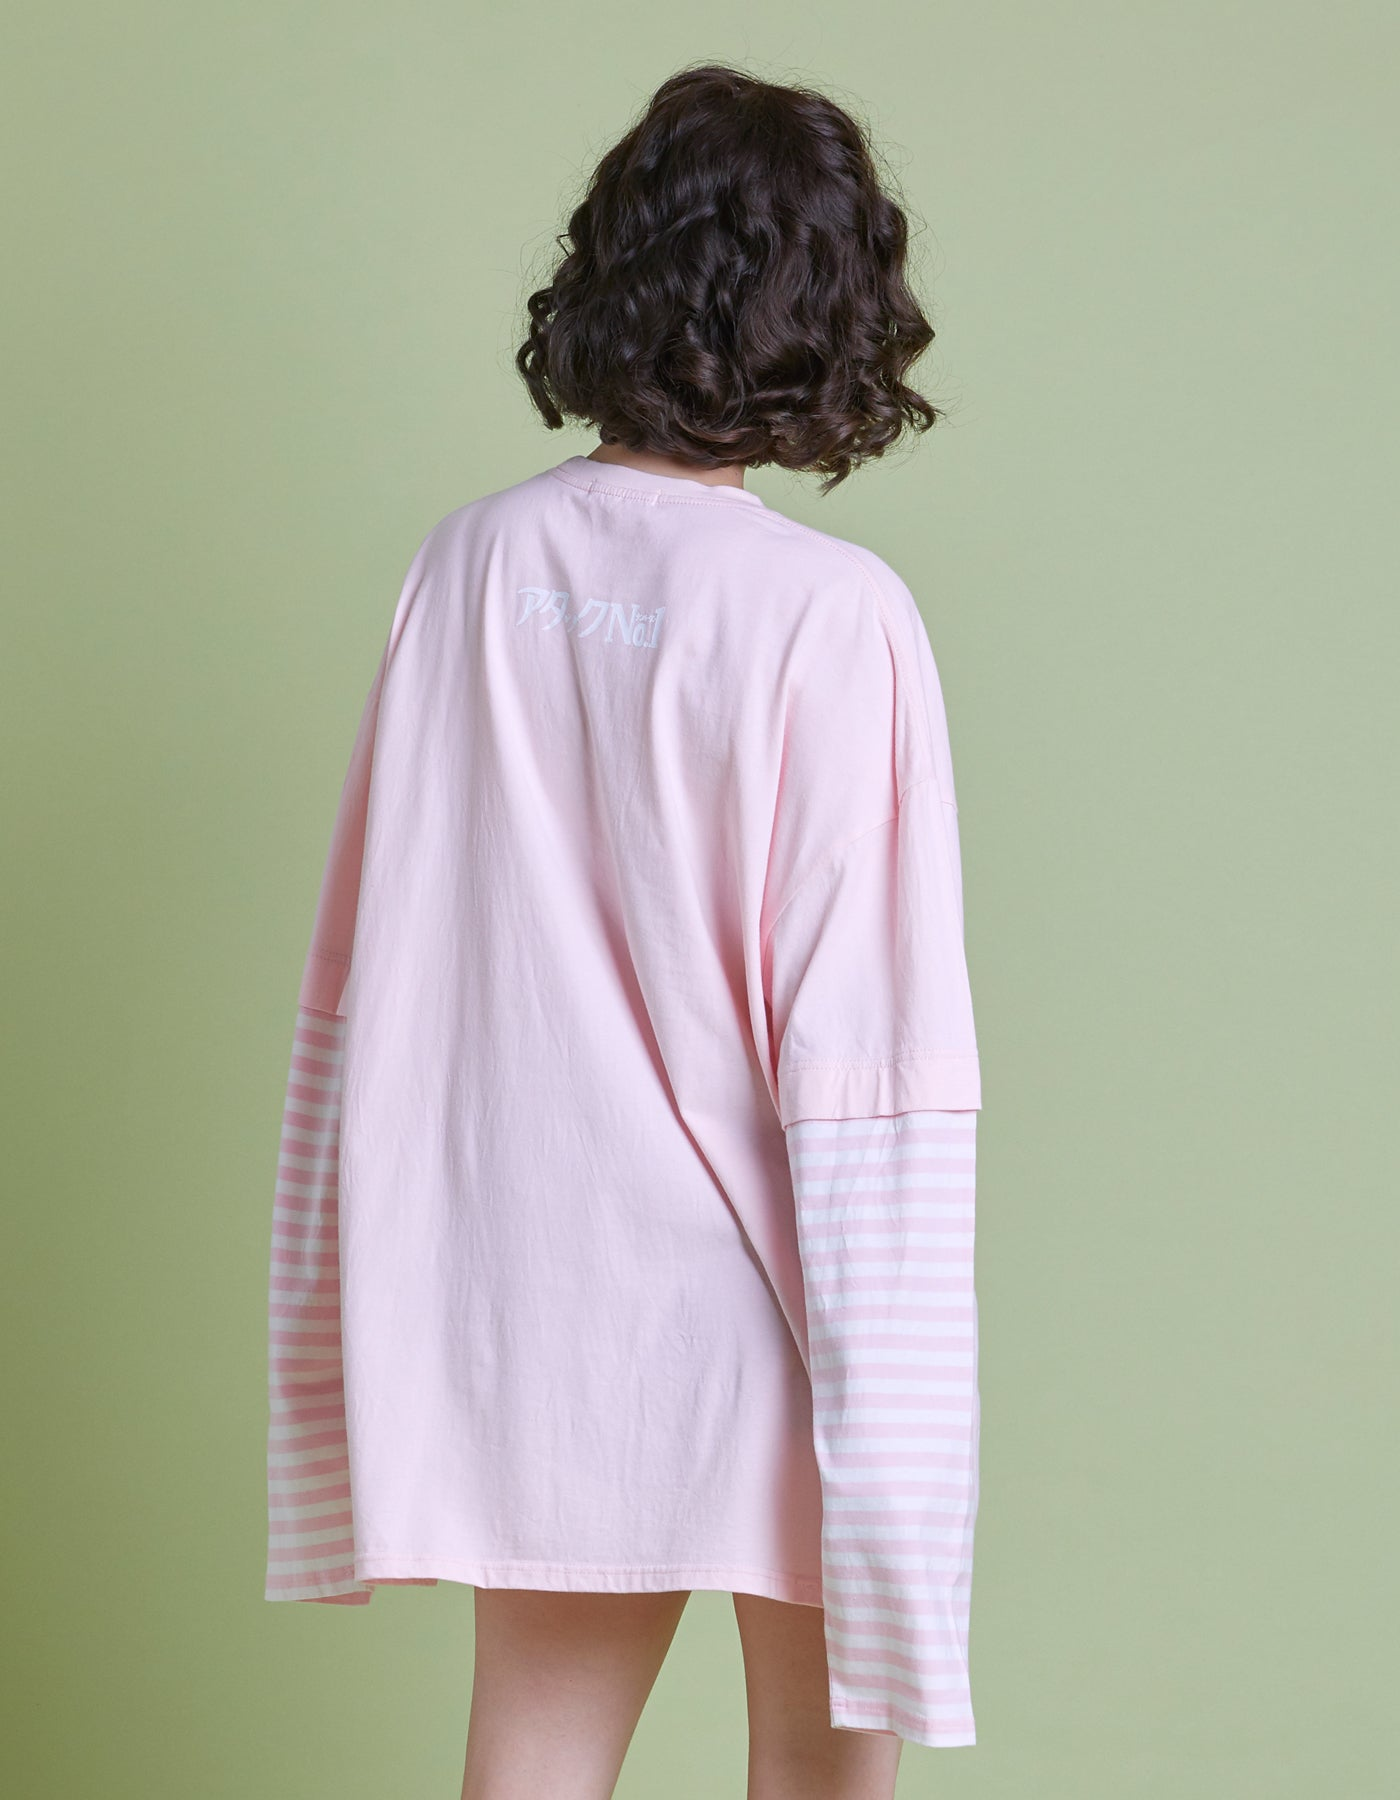 アタックNO1 x little sunny bite Fake layered long tee / PINK